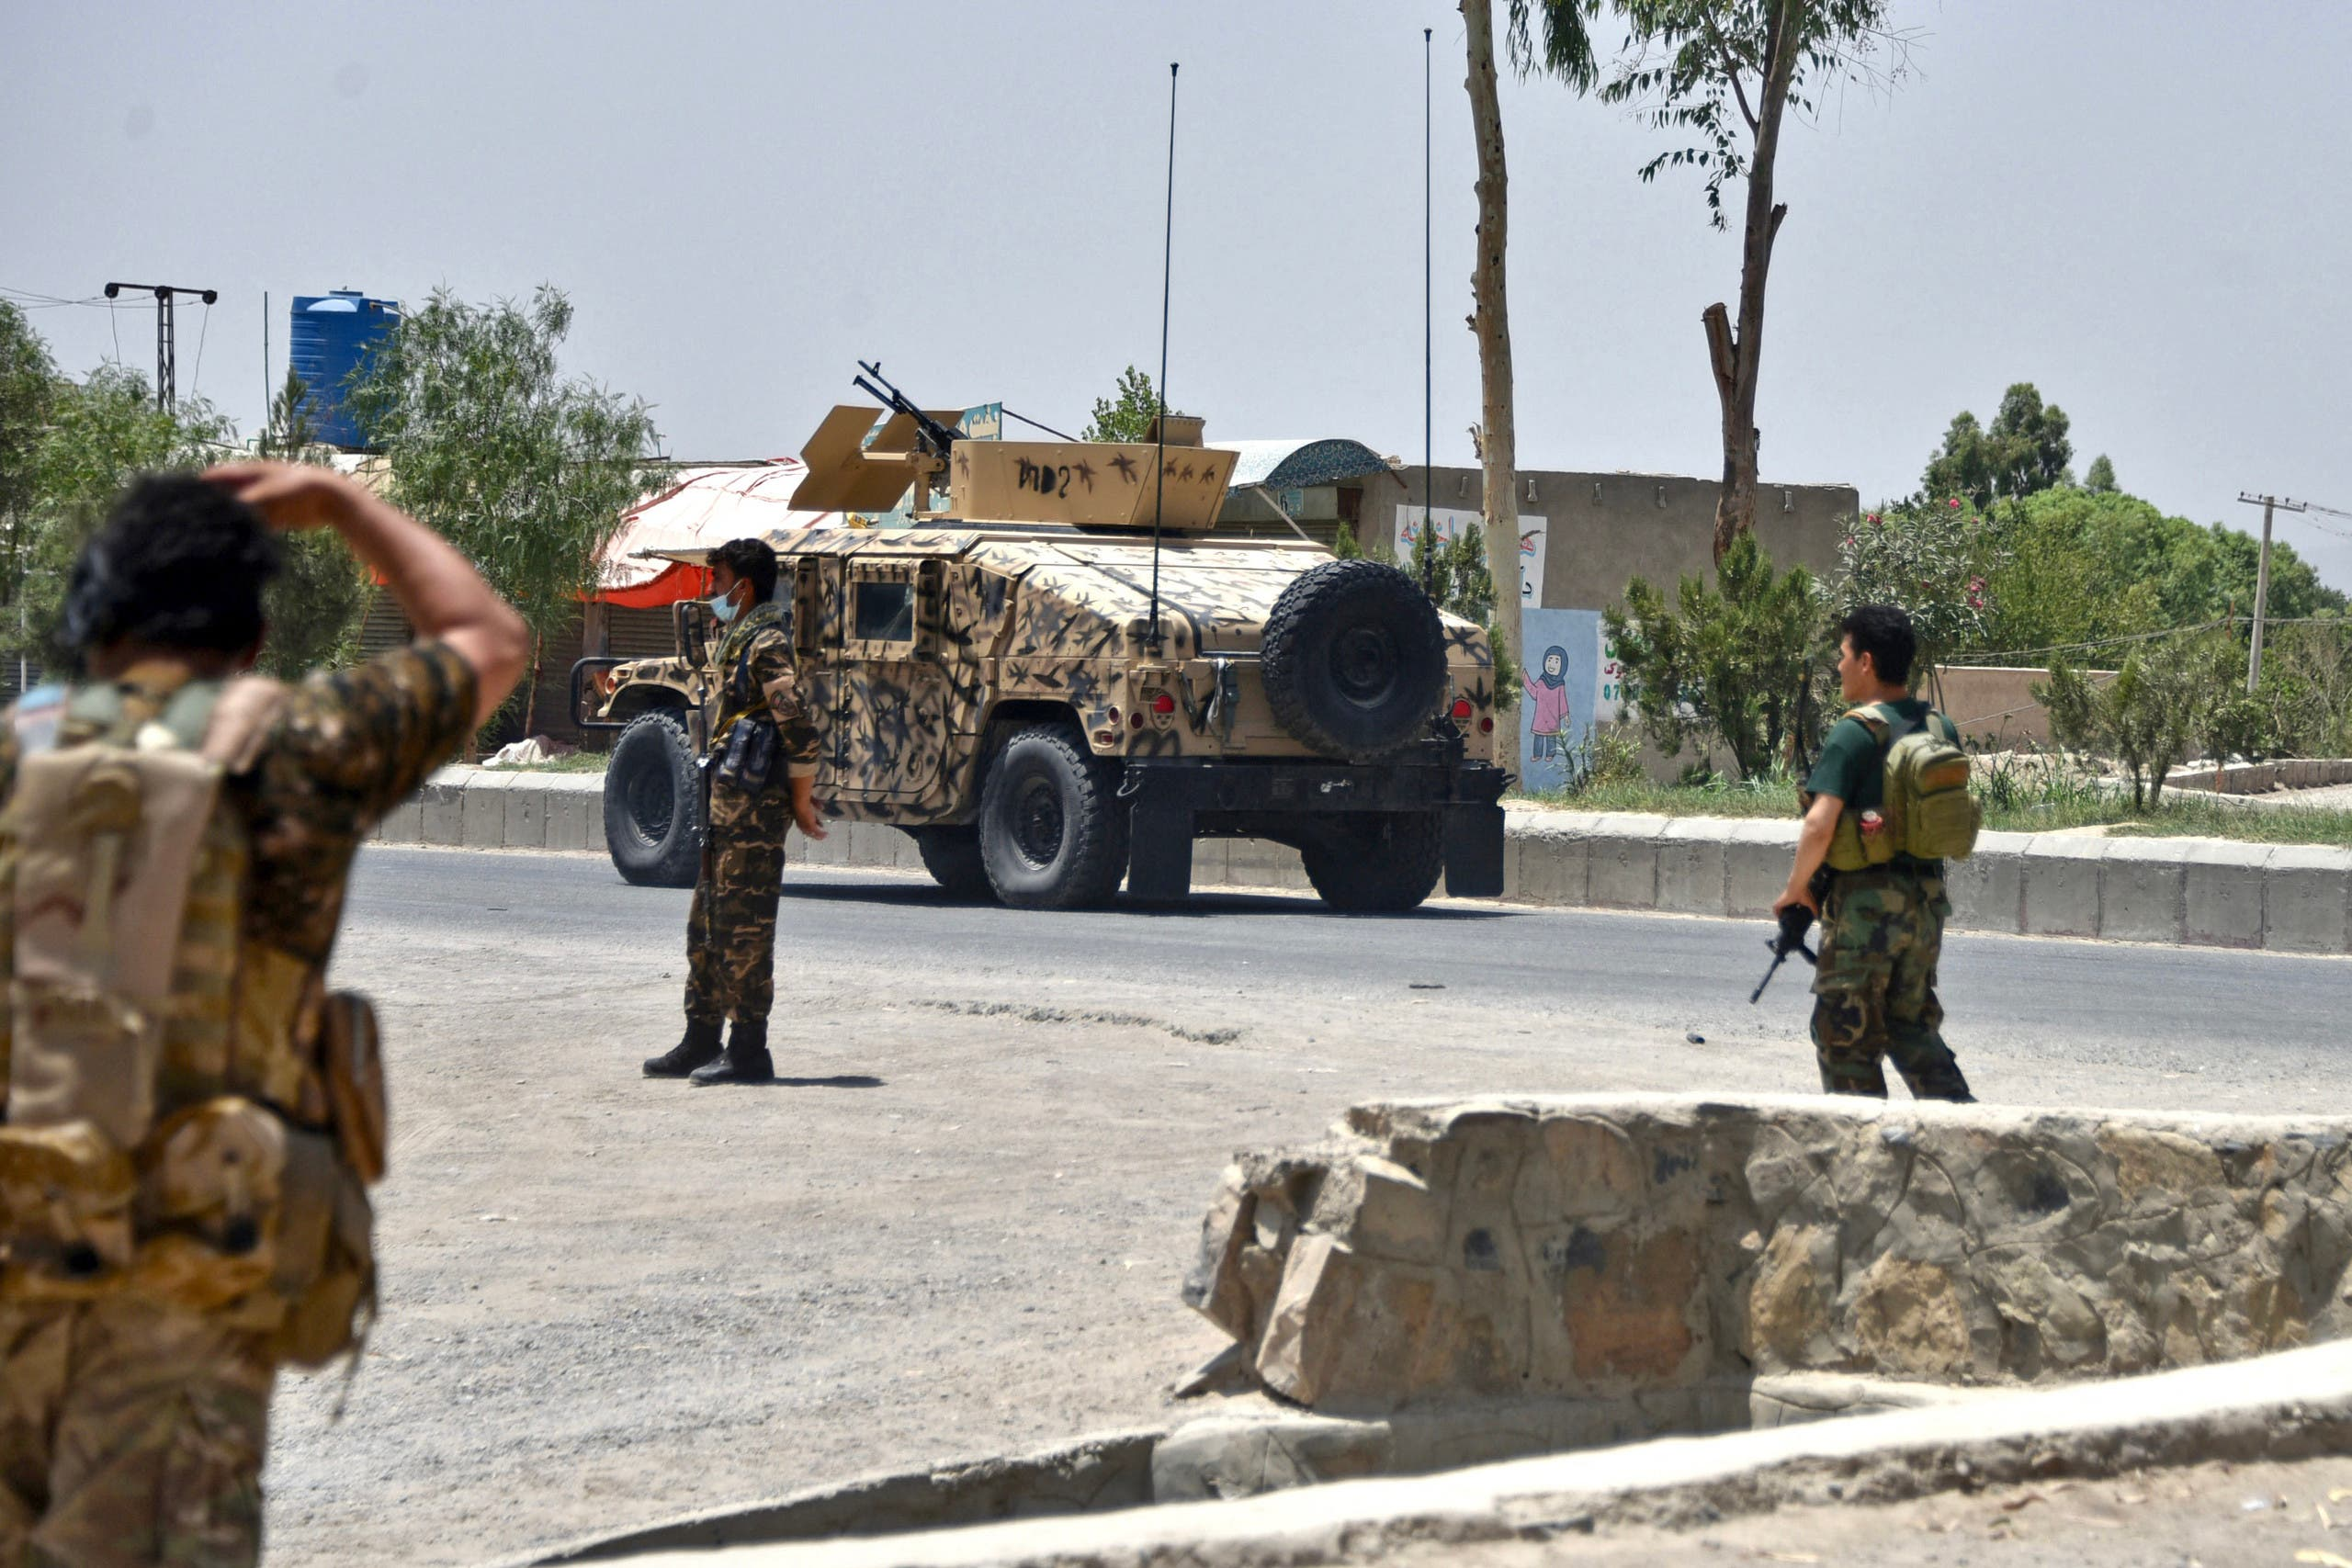 The Pentagon: the mission of the Afghan forces is to slow down the momentum of the Taliban